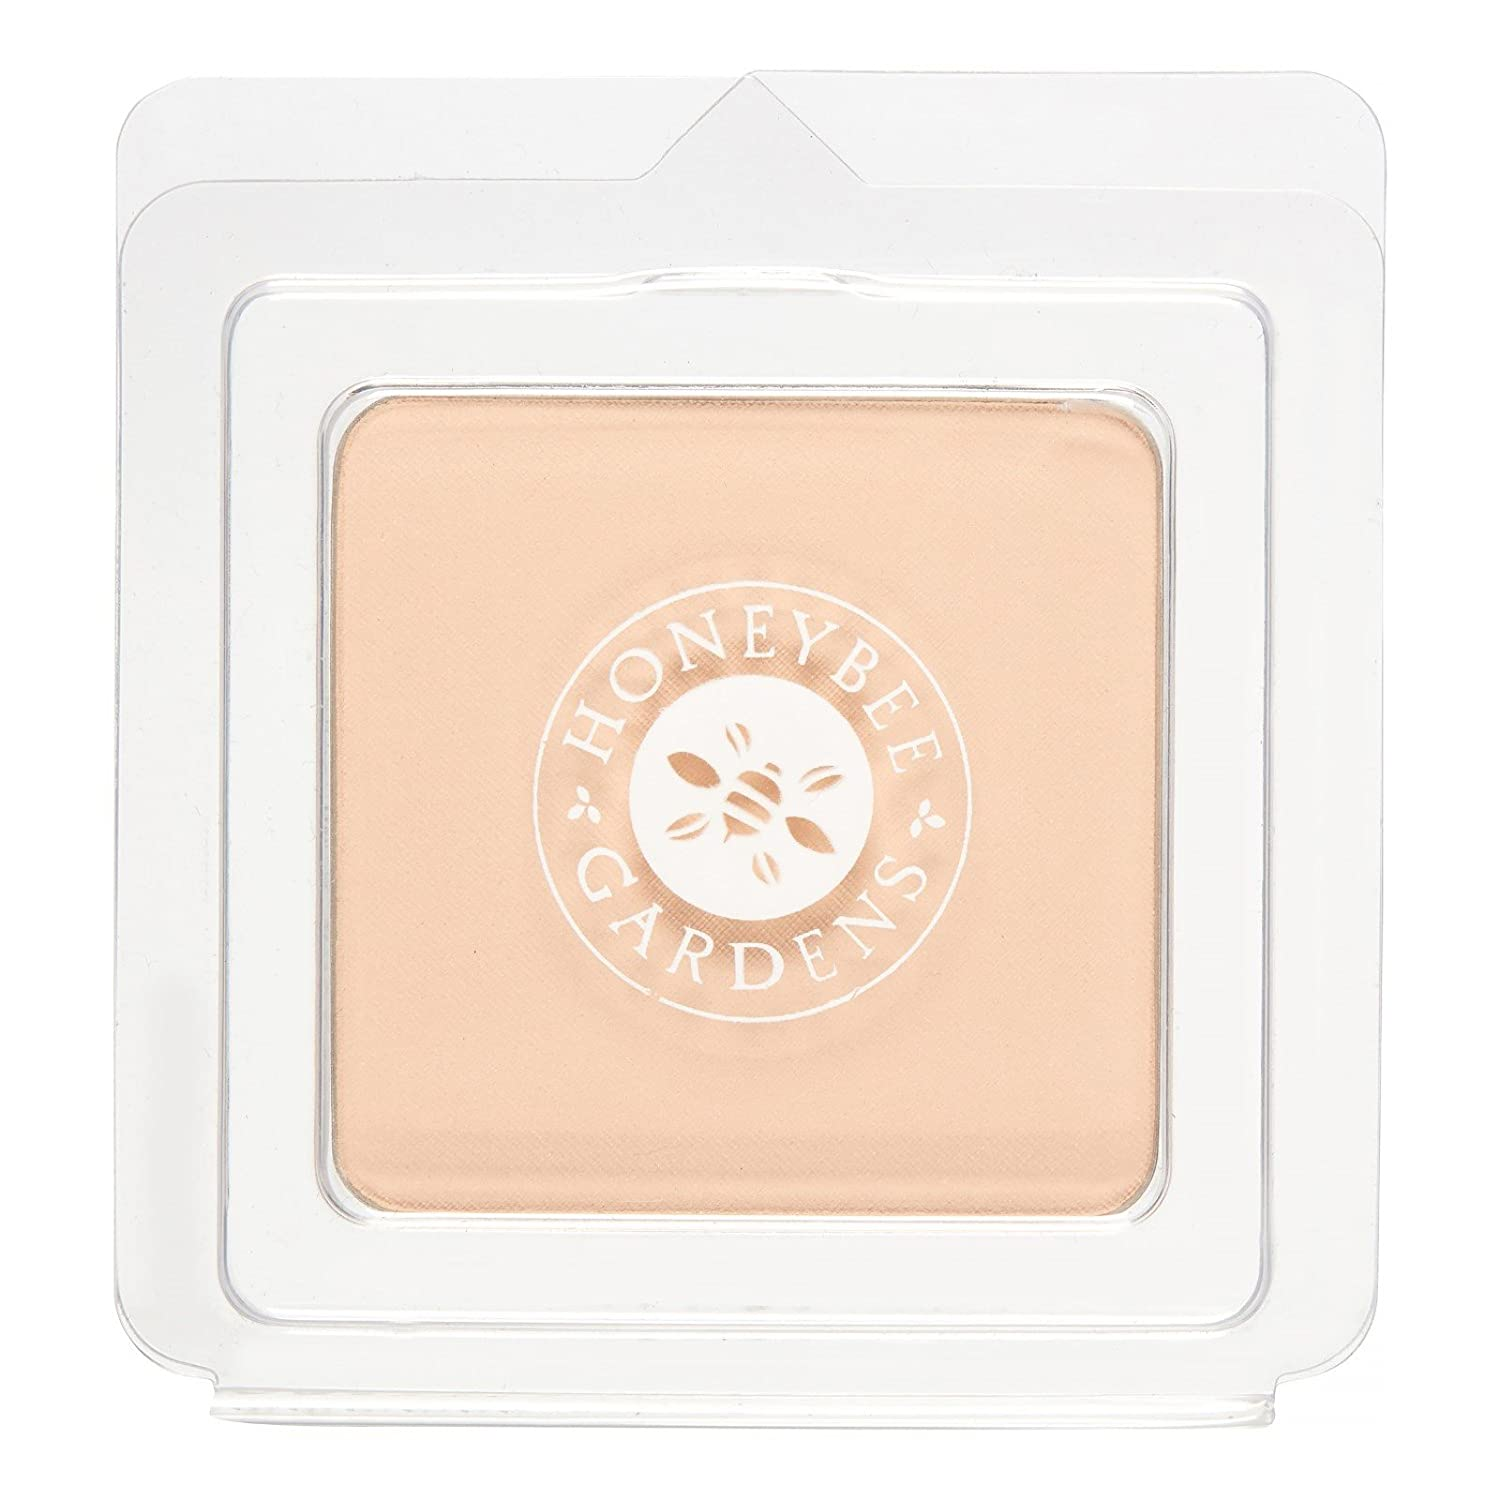 Honeybee Gardens Pressed Mineral Powder Foundation Refill, Supernatural,8g